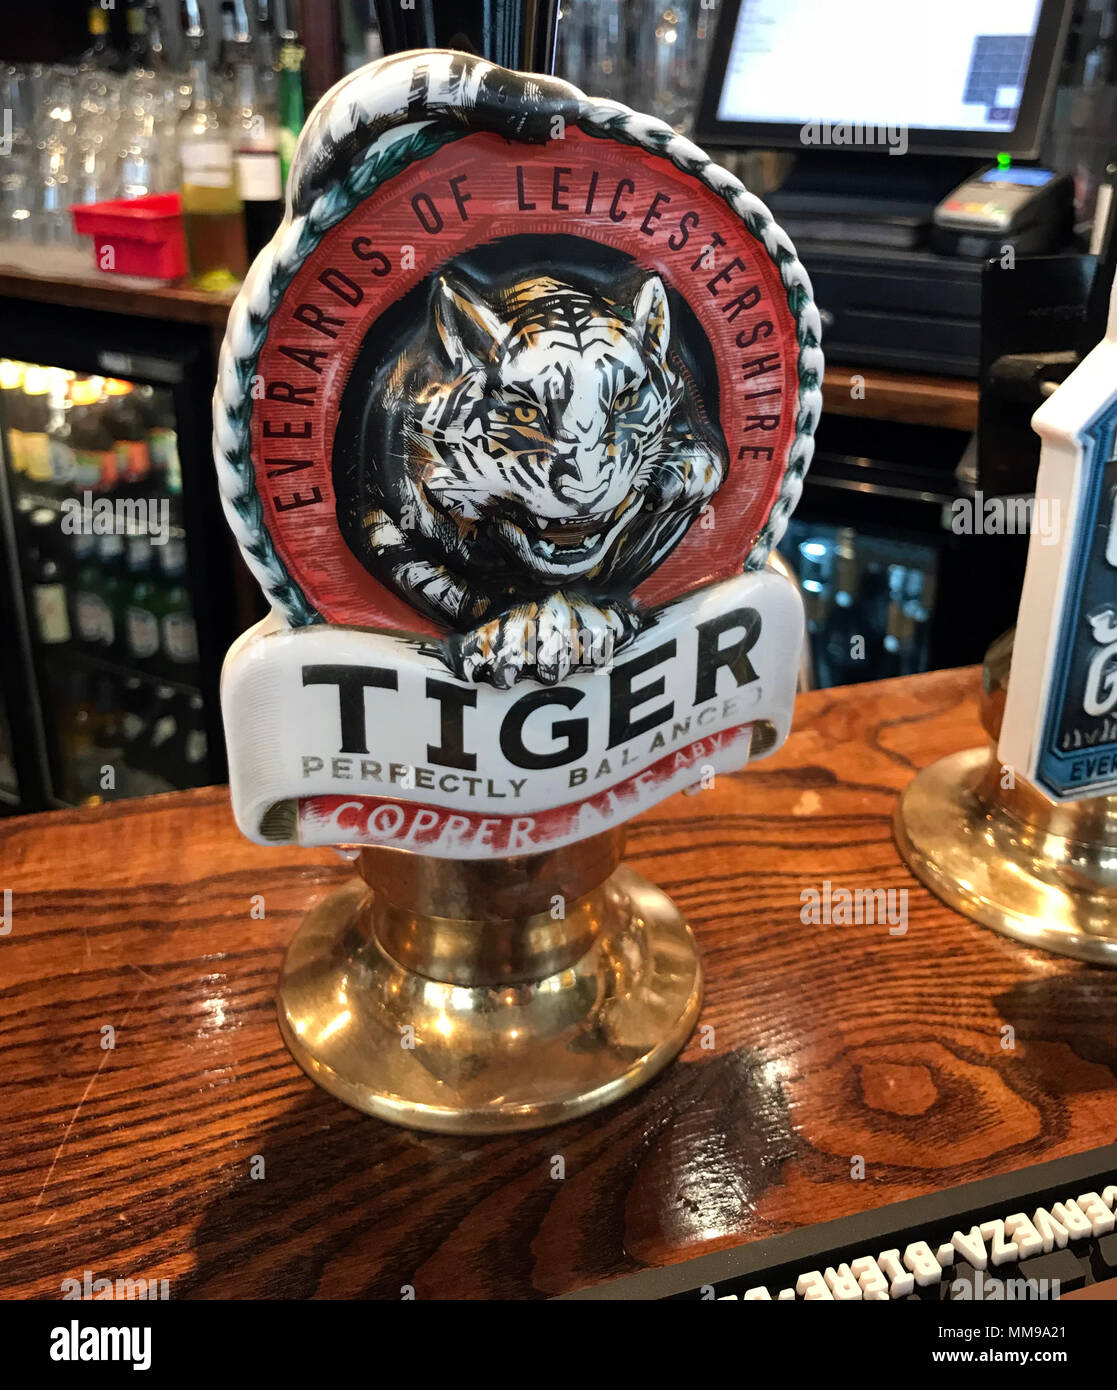 GoTonysmith,@HotpixUK,real ale,on a bar,bar,bitter,in a,pubs,bars,England,UK,GB,Britain,British,Traditional British Beer,tourist,tourism,Everards,brewery,brewing,copper ale,copper,cat,log,sign,handpull,Tiger beer,Leicester,Leicestershire,county,English,beer brewing,local,national,alcohol,drinking,units of alcohol,Dangers of Alcohol